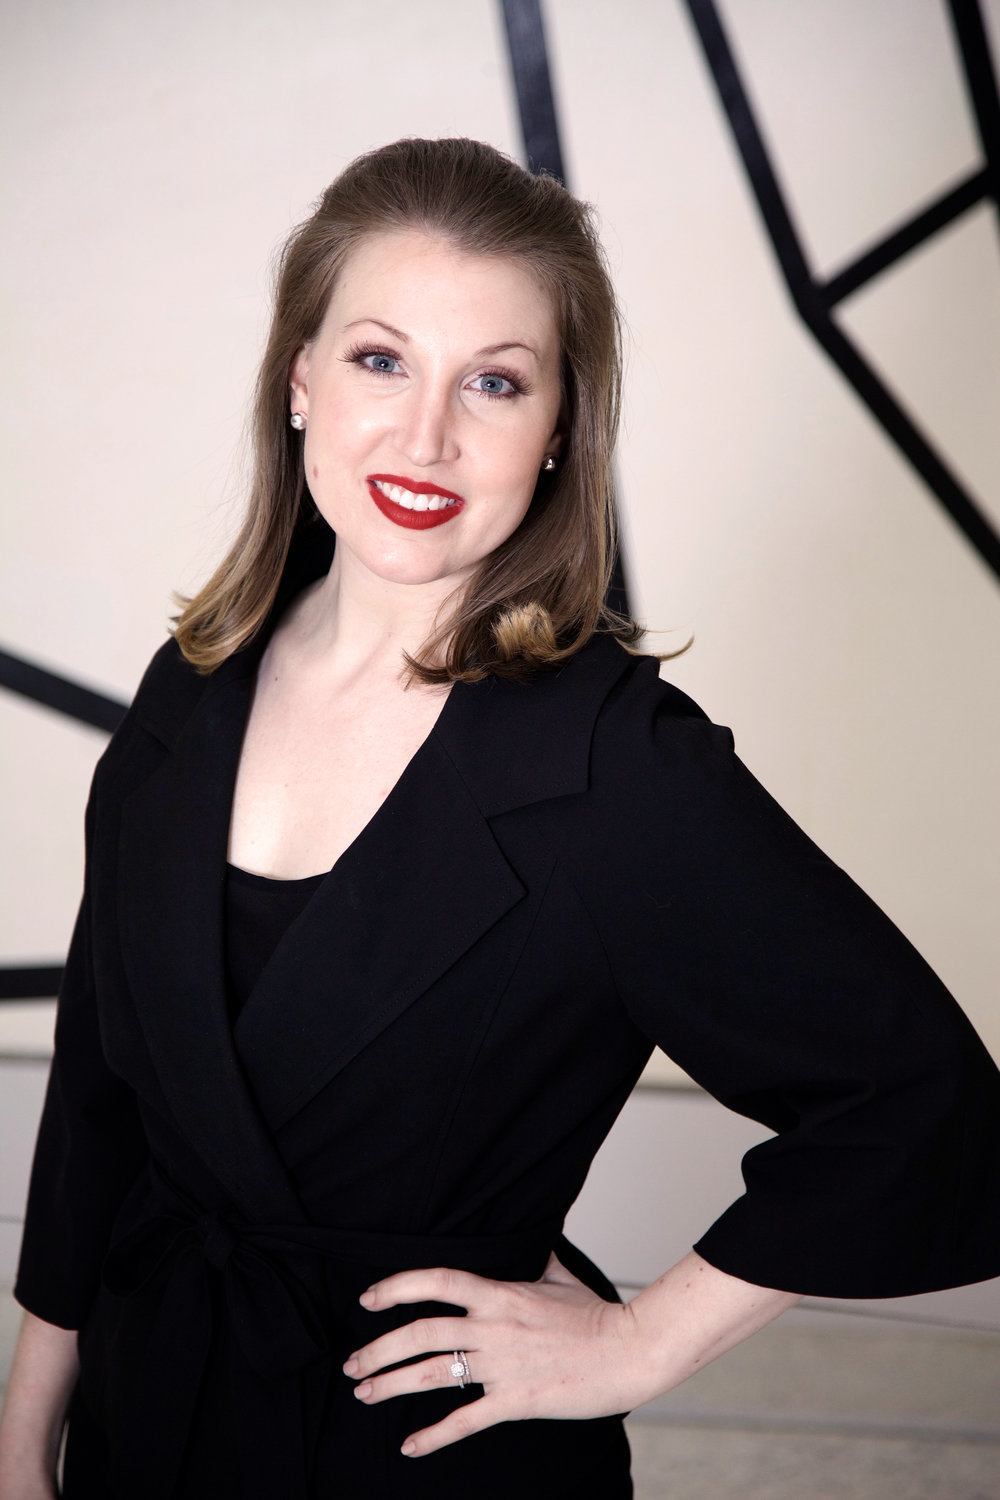 Sarah Clay Lindvall, Director Sarah is a Music Educator, Vocalist, and Choral Conductor dedicated to sharing the gift of music through creative education and innovative performance. She currently serves as the Director of Music and Dramatic Arts at the Notre Dame School of Manhattan. Besides directing Sirens of Gotham, Sarah =acts as faculty and coach for Sweet Adelines International's Greater NY/NJ Region 15, and teaches private voice to students of all ages.  Sarah received a Master of Music degree in Vocal Performance from New York University, and, prior to her graduate studies, received a Bachelor of Music degree in Music Education from Georgia Southern University. Before residing in New York City, Sarah was a featured performer at The Walt Disney World Resort in Orlando, Florida.